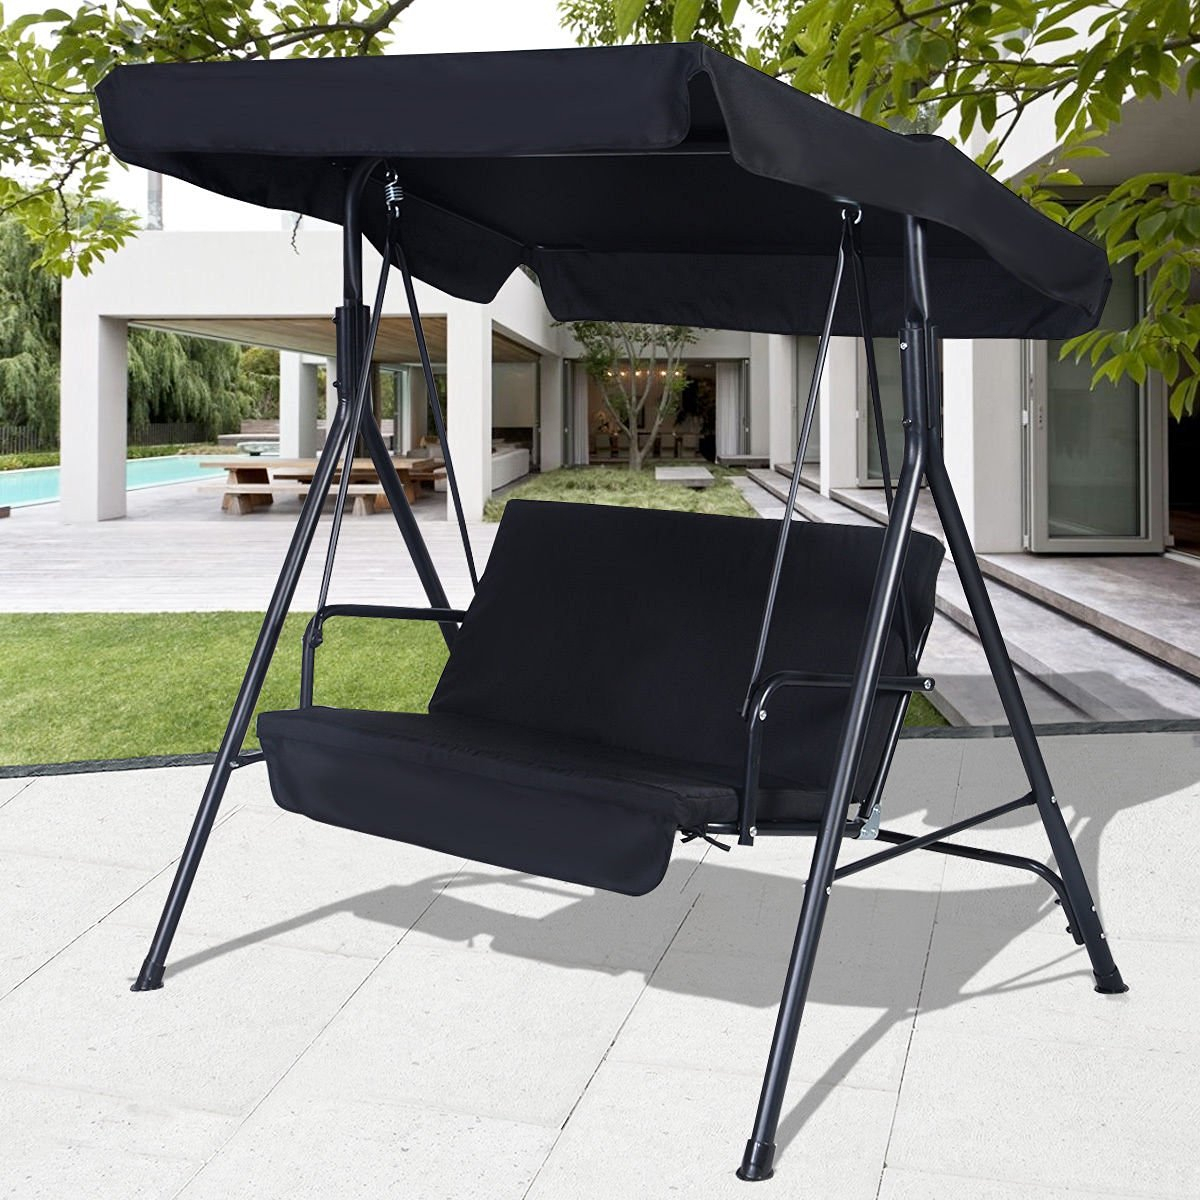 Buy Swings Black Outdoor Patio Swing Canopy Awning Yard Throughout 2 Person Black Steel Outdoor Swings (View 3 of 25)